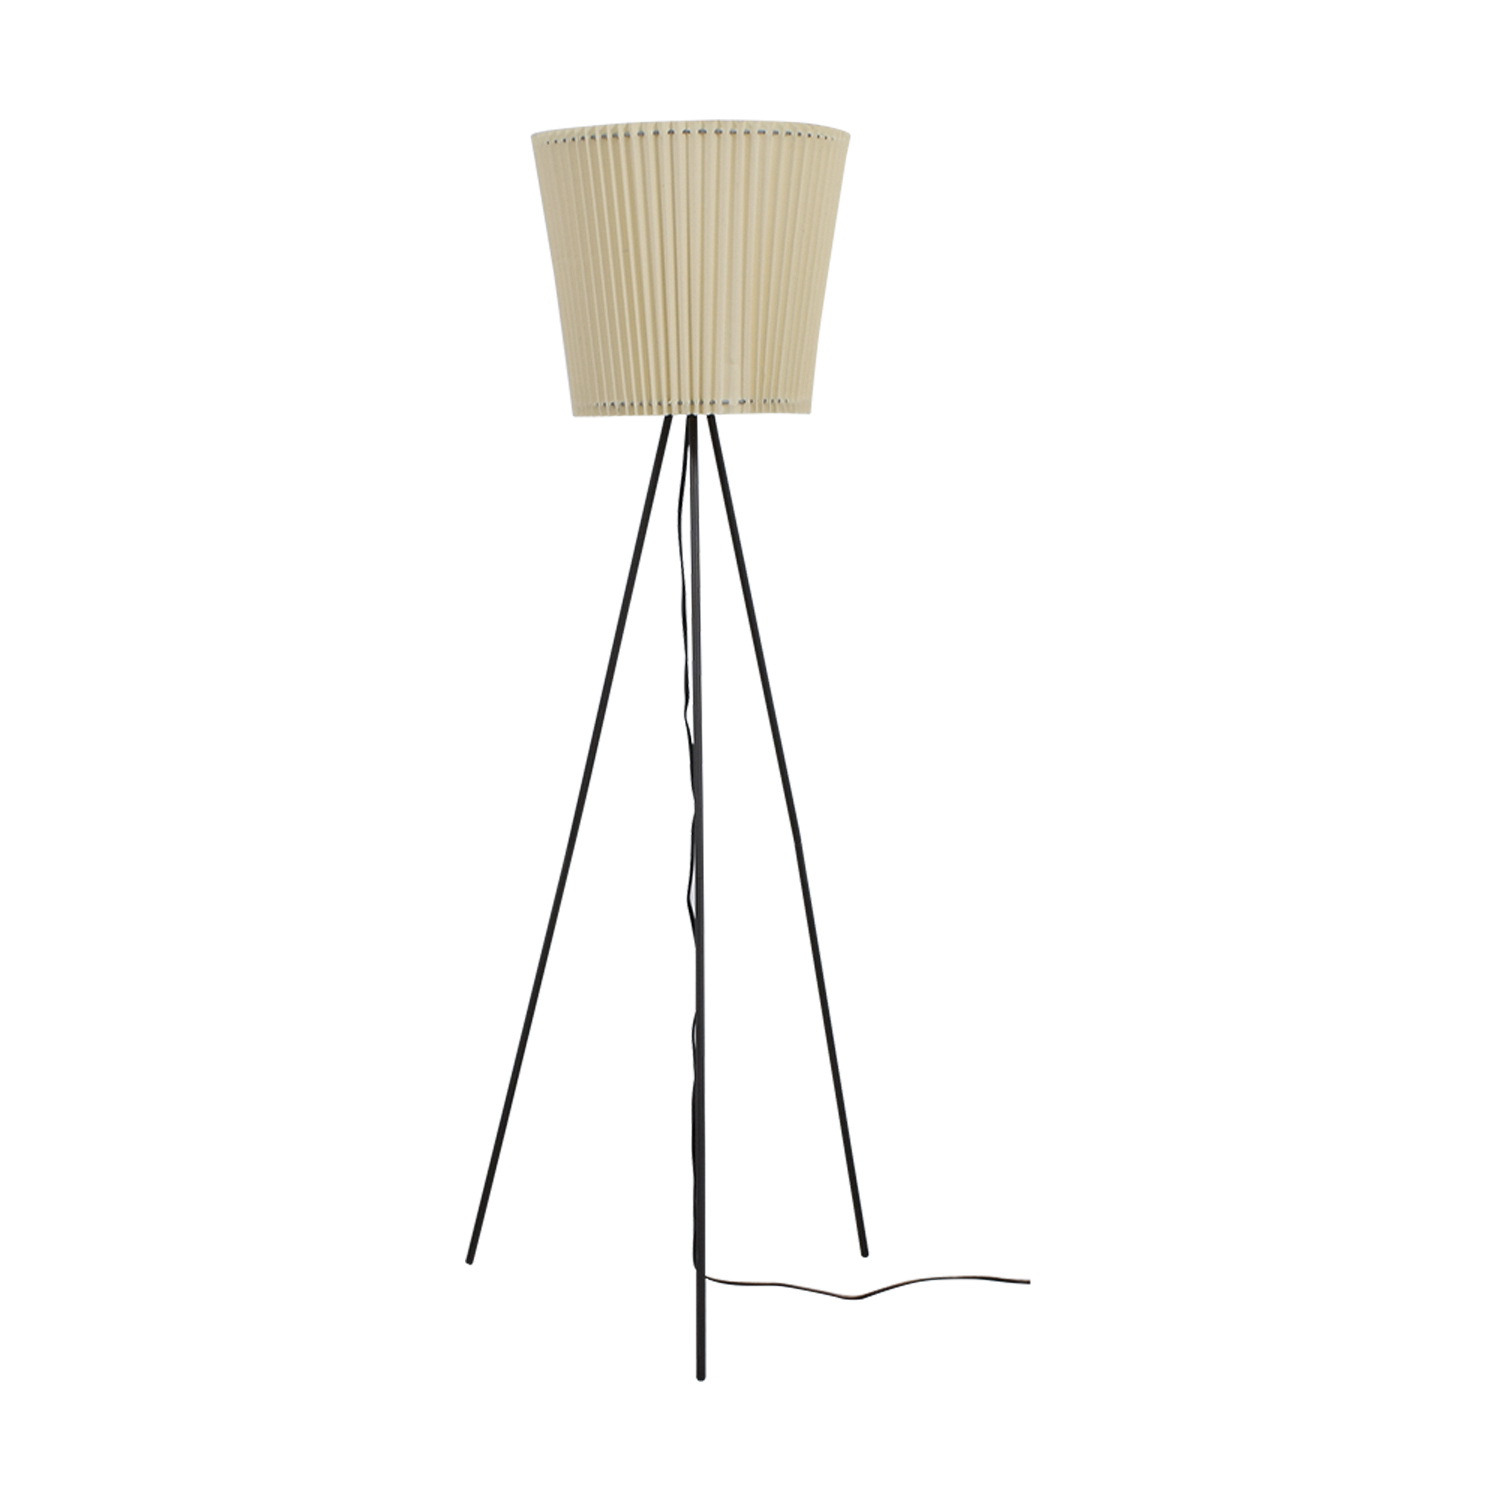 Pottery Barn Pottery Barn Tripod Floor Lamp With Accordion Shade Dimensions  ...